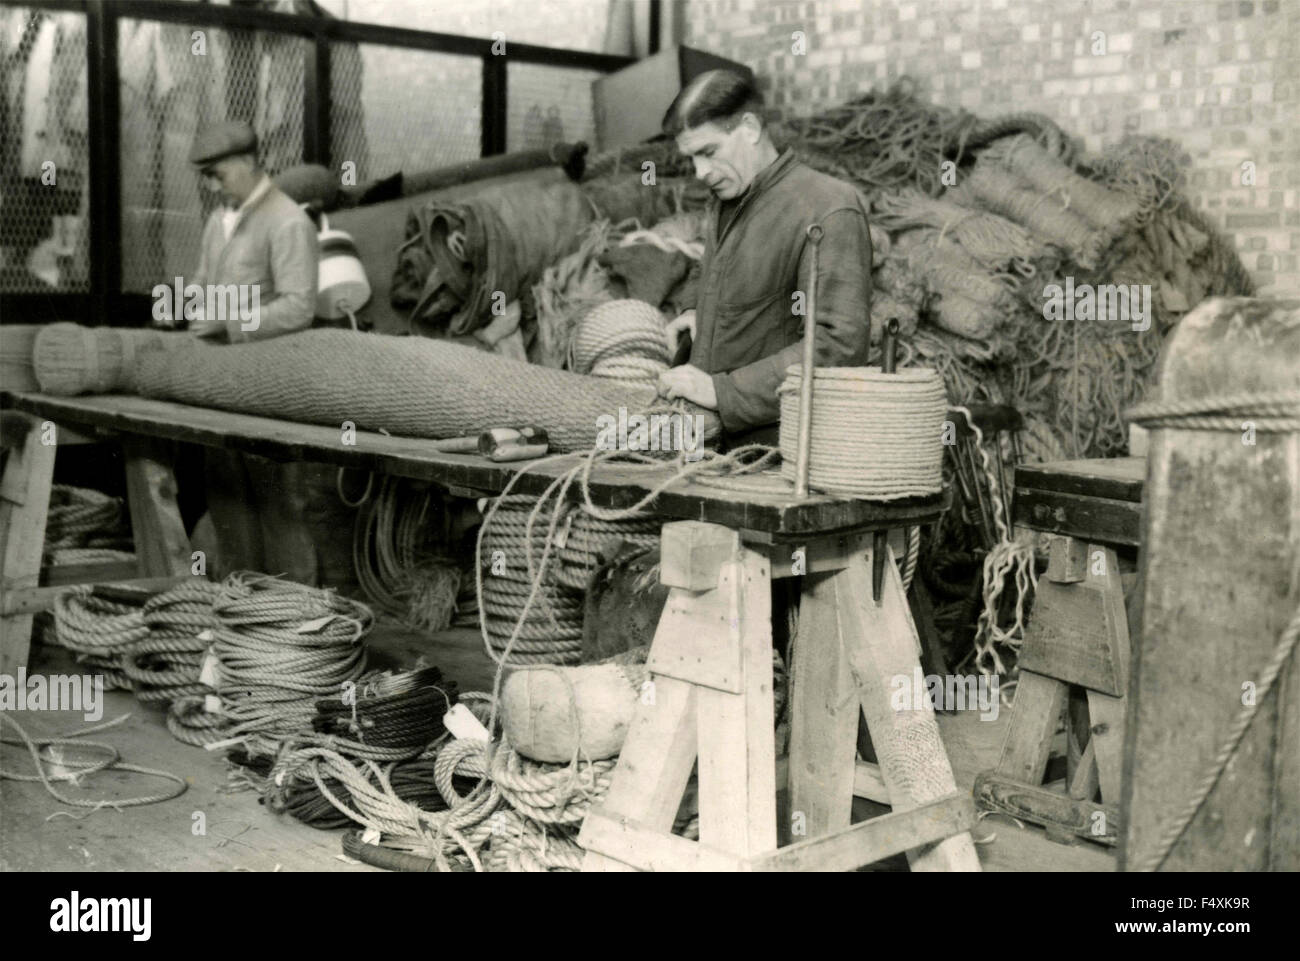 Manufacture of rope fenders, Royal National Lifeboat Institution, UK - Stock Image